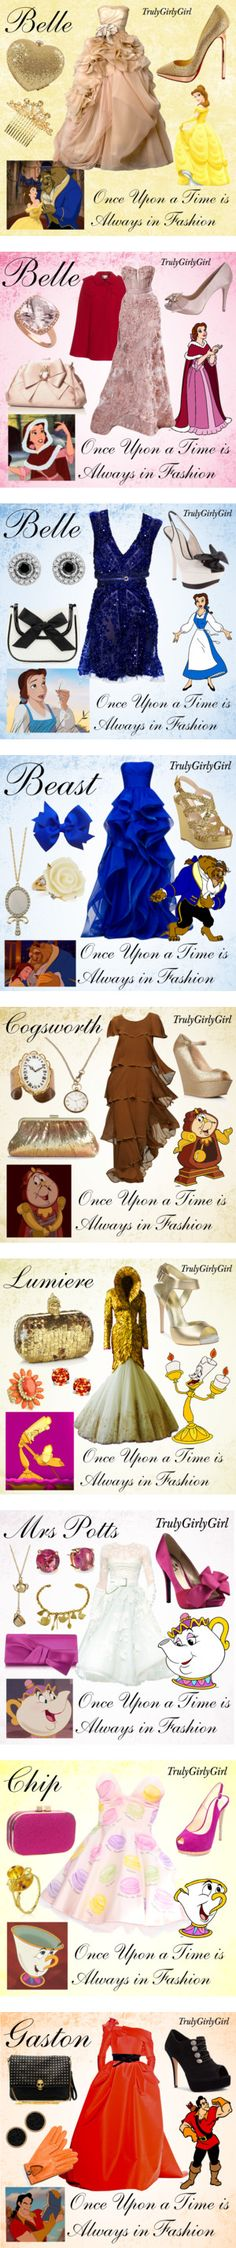 """Disney Style: Beauty and the Beast"" by trulygirlygirl Disney Outfits, Disney Dresses, Disney Clothes, Estilo Disney, Casual Cosplay, Moda Disney, Cute Dresses, Cute Outfits, Prom Dresses"